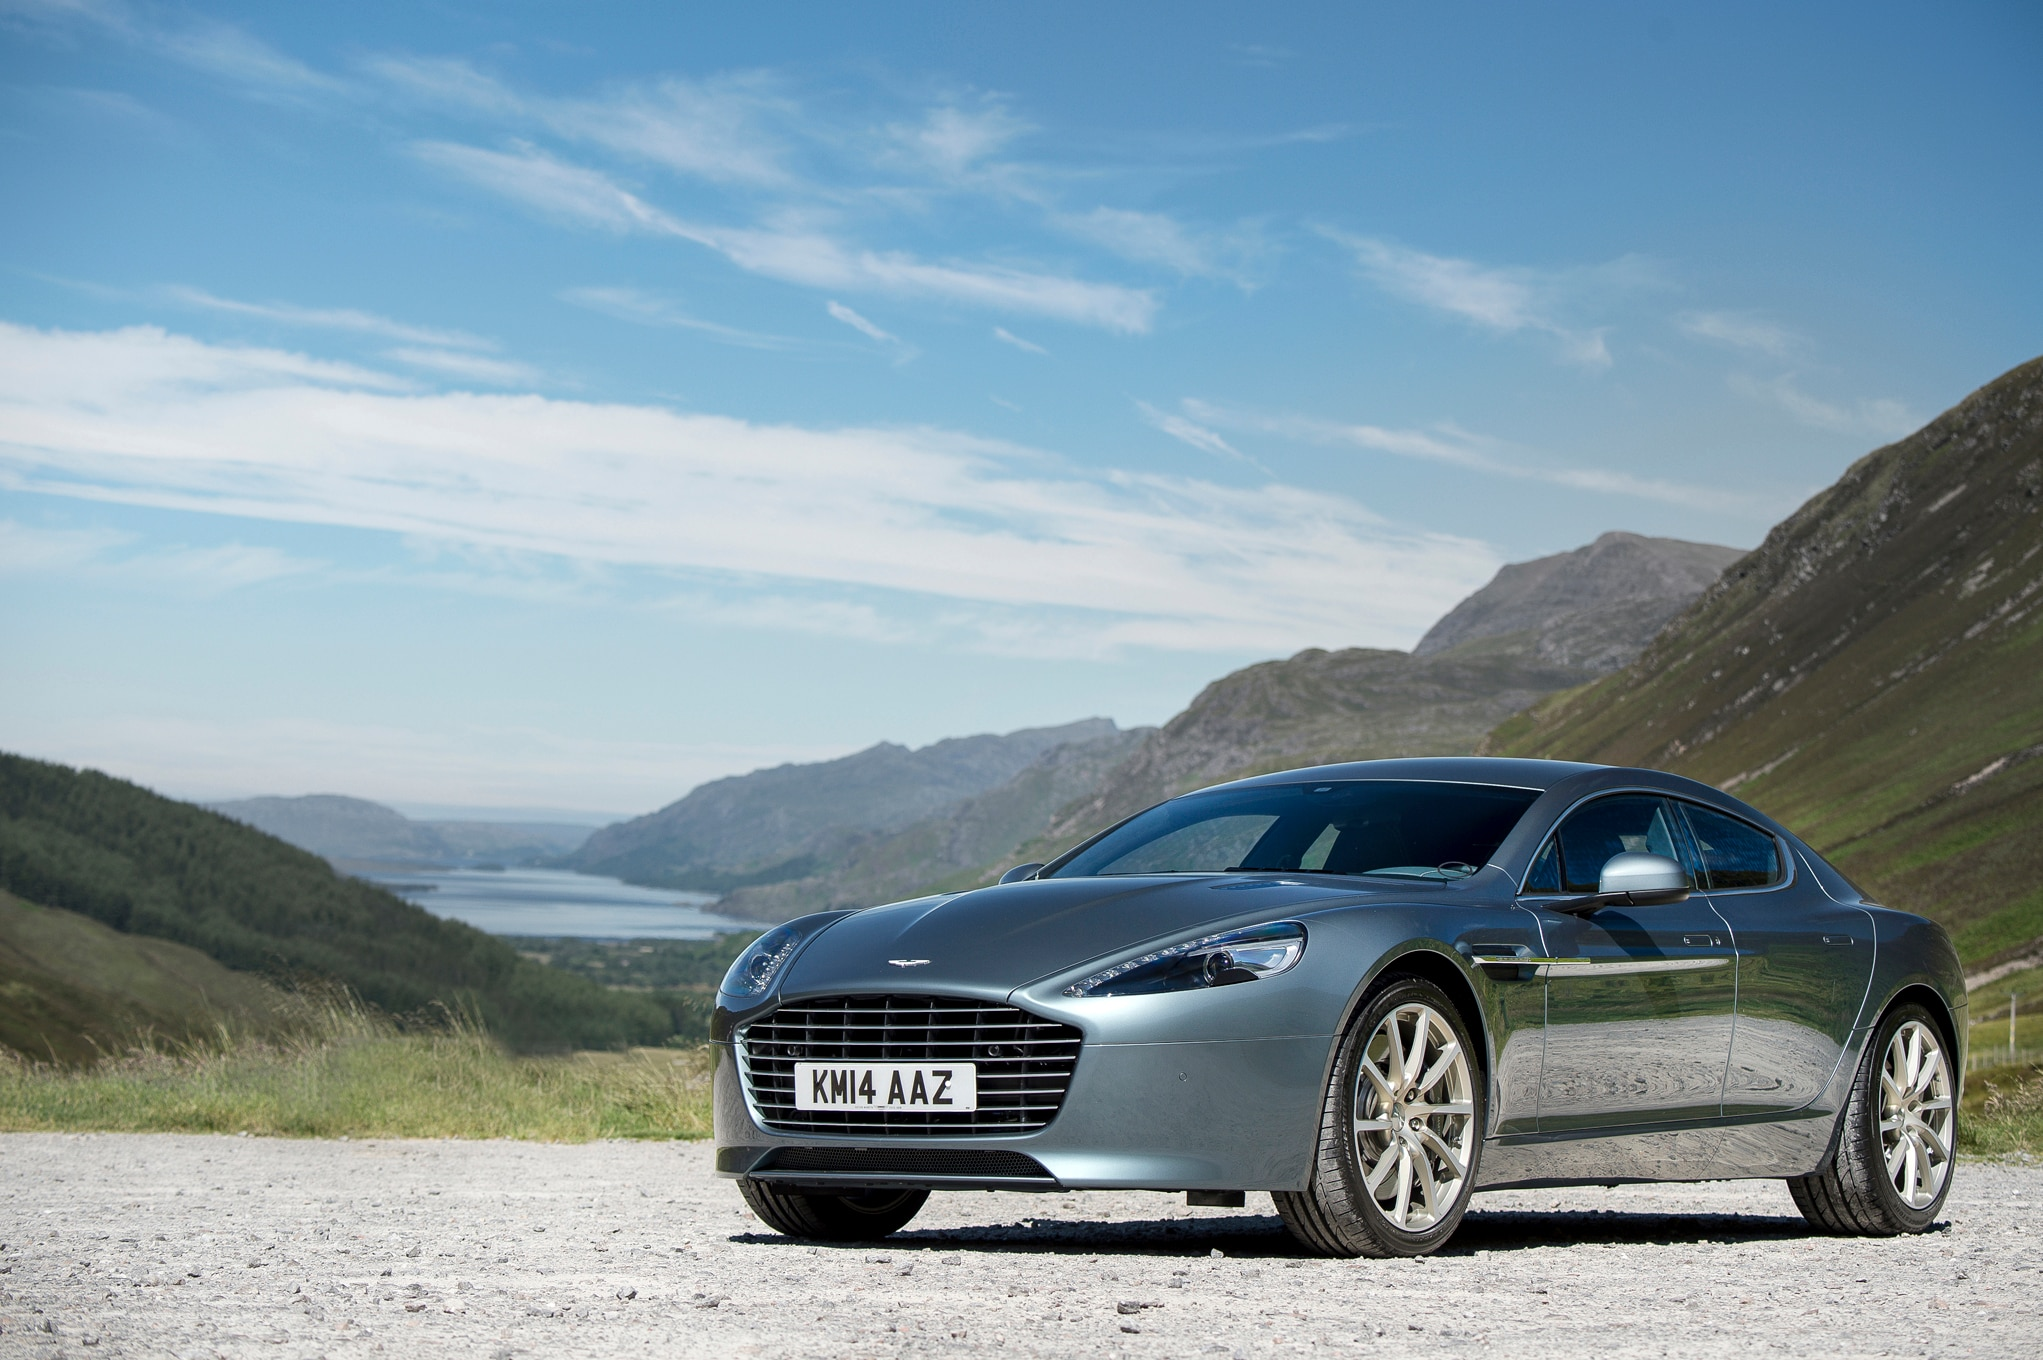 The 2015 Aston Martin Rapide S